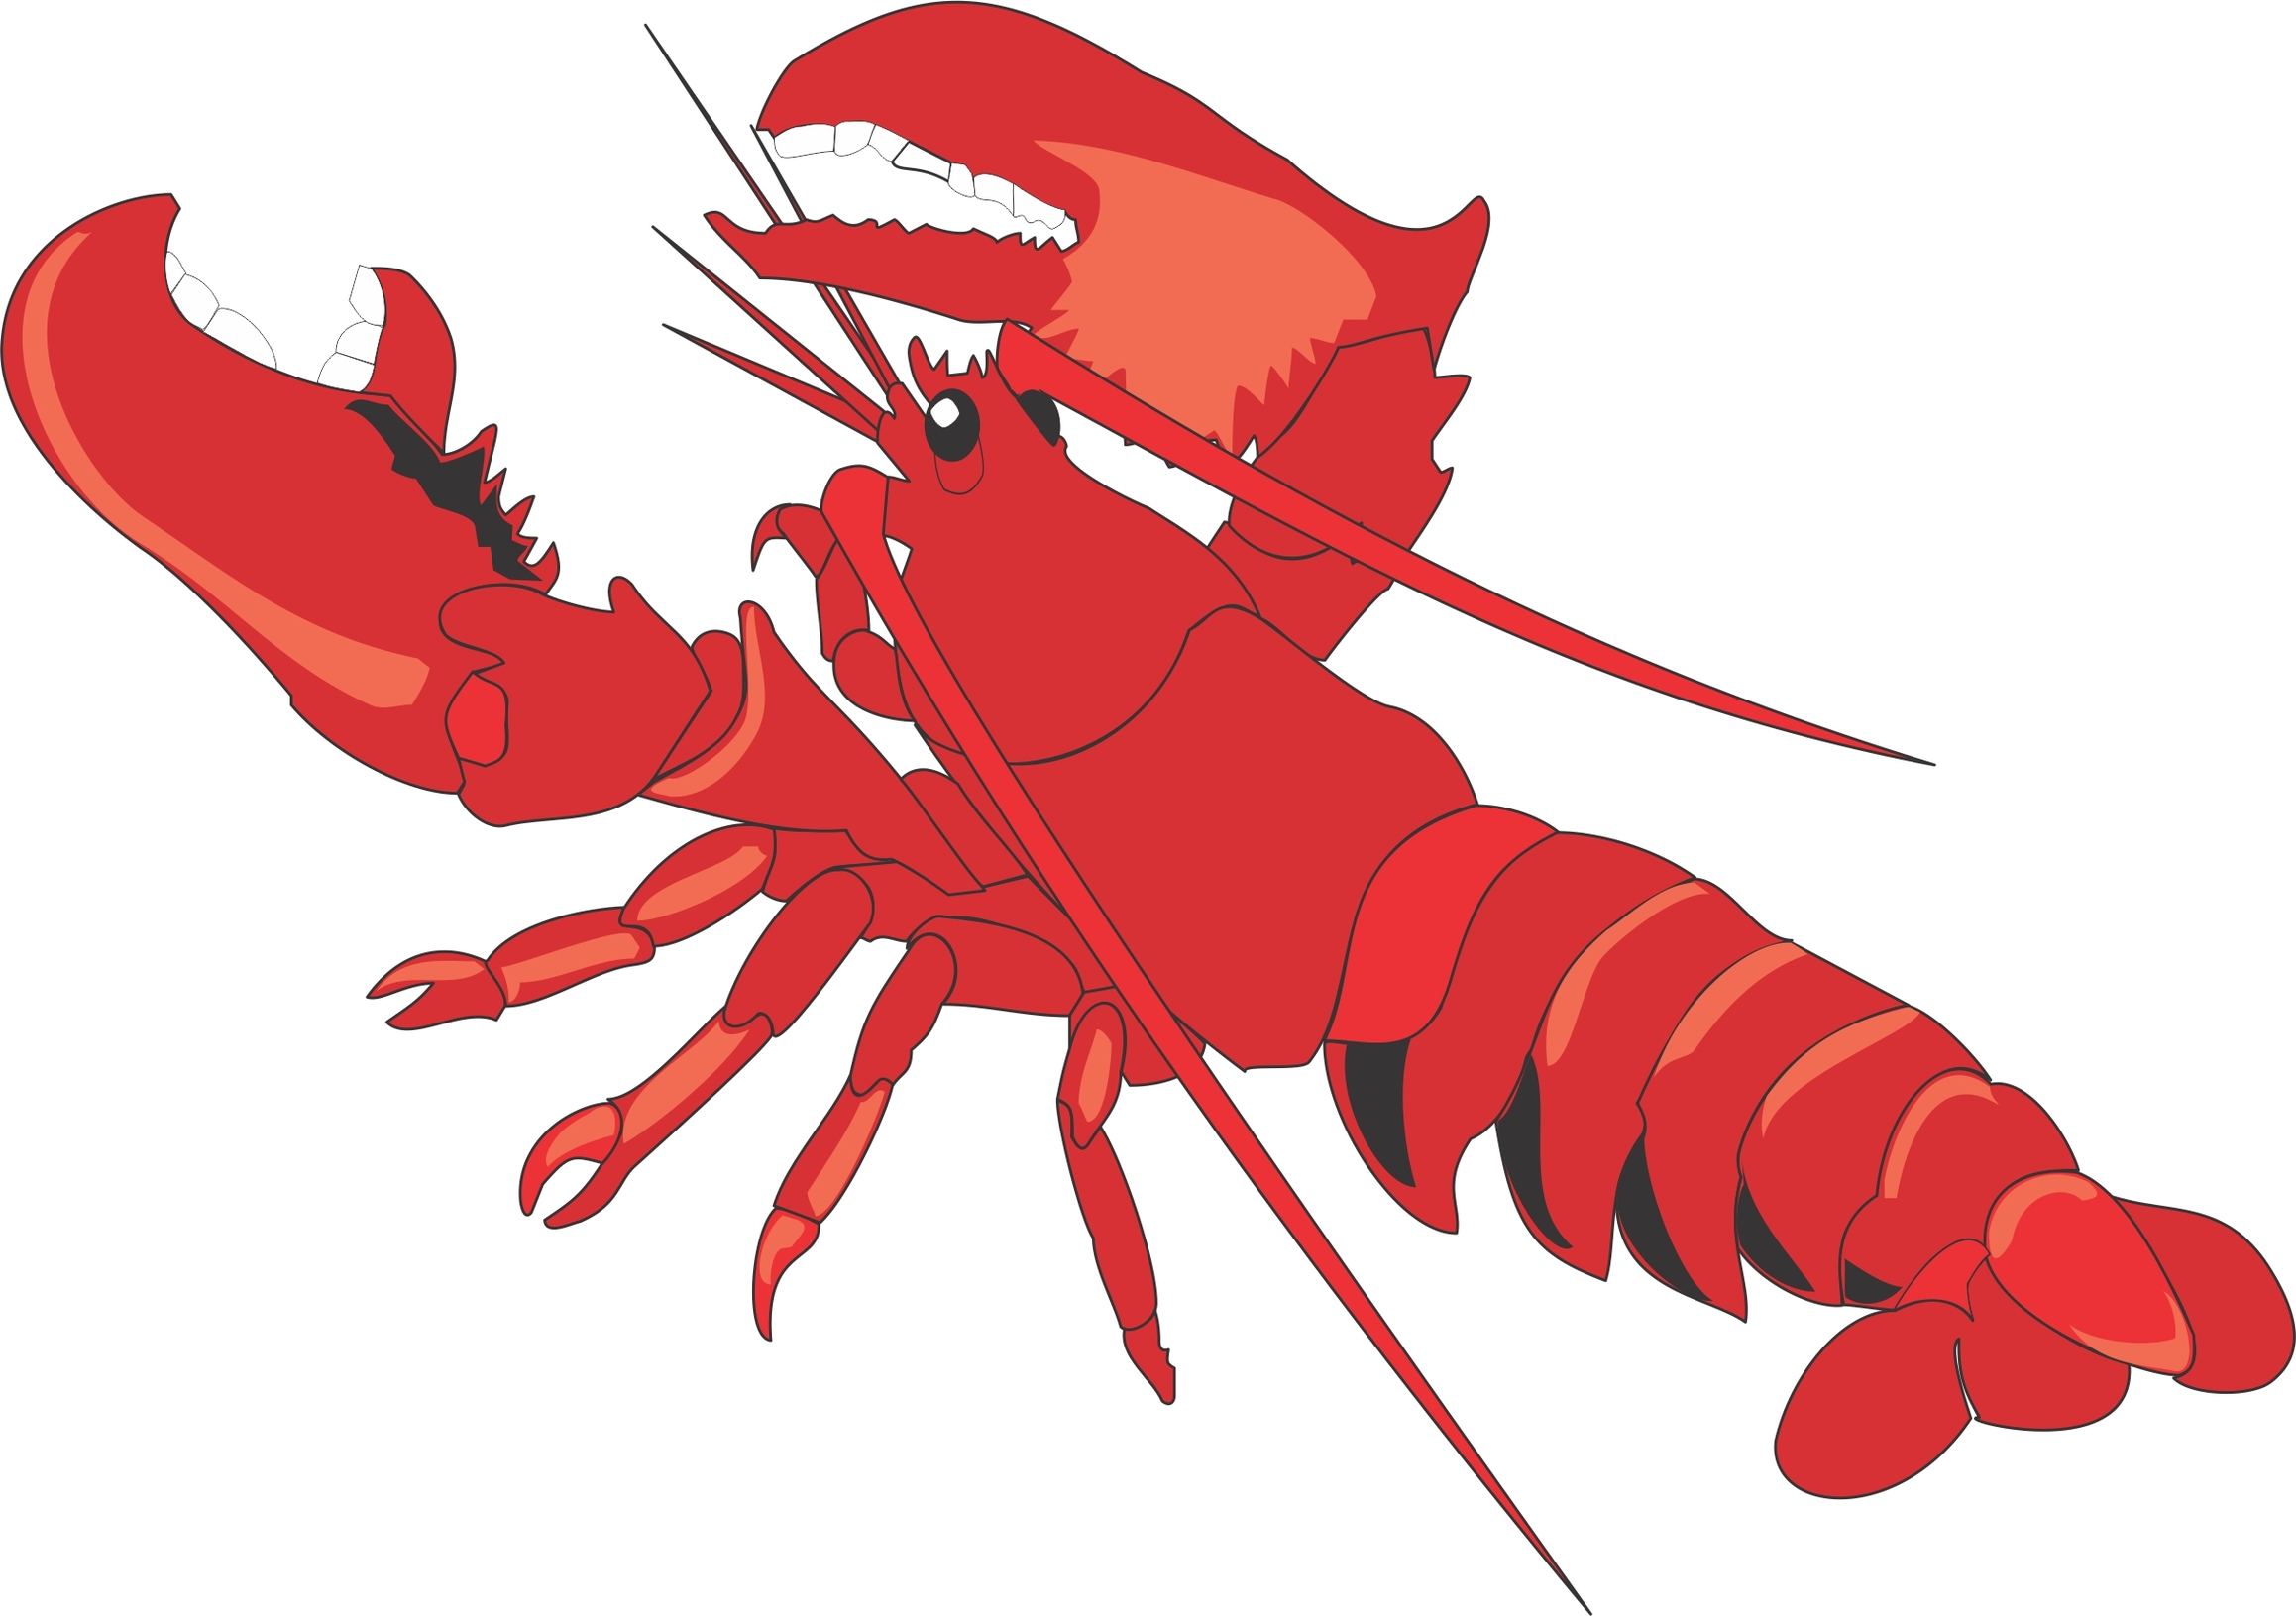 Lobster clip art images free clipart.